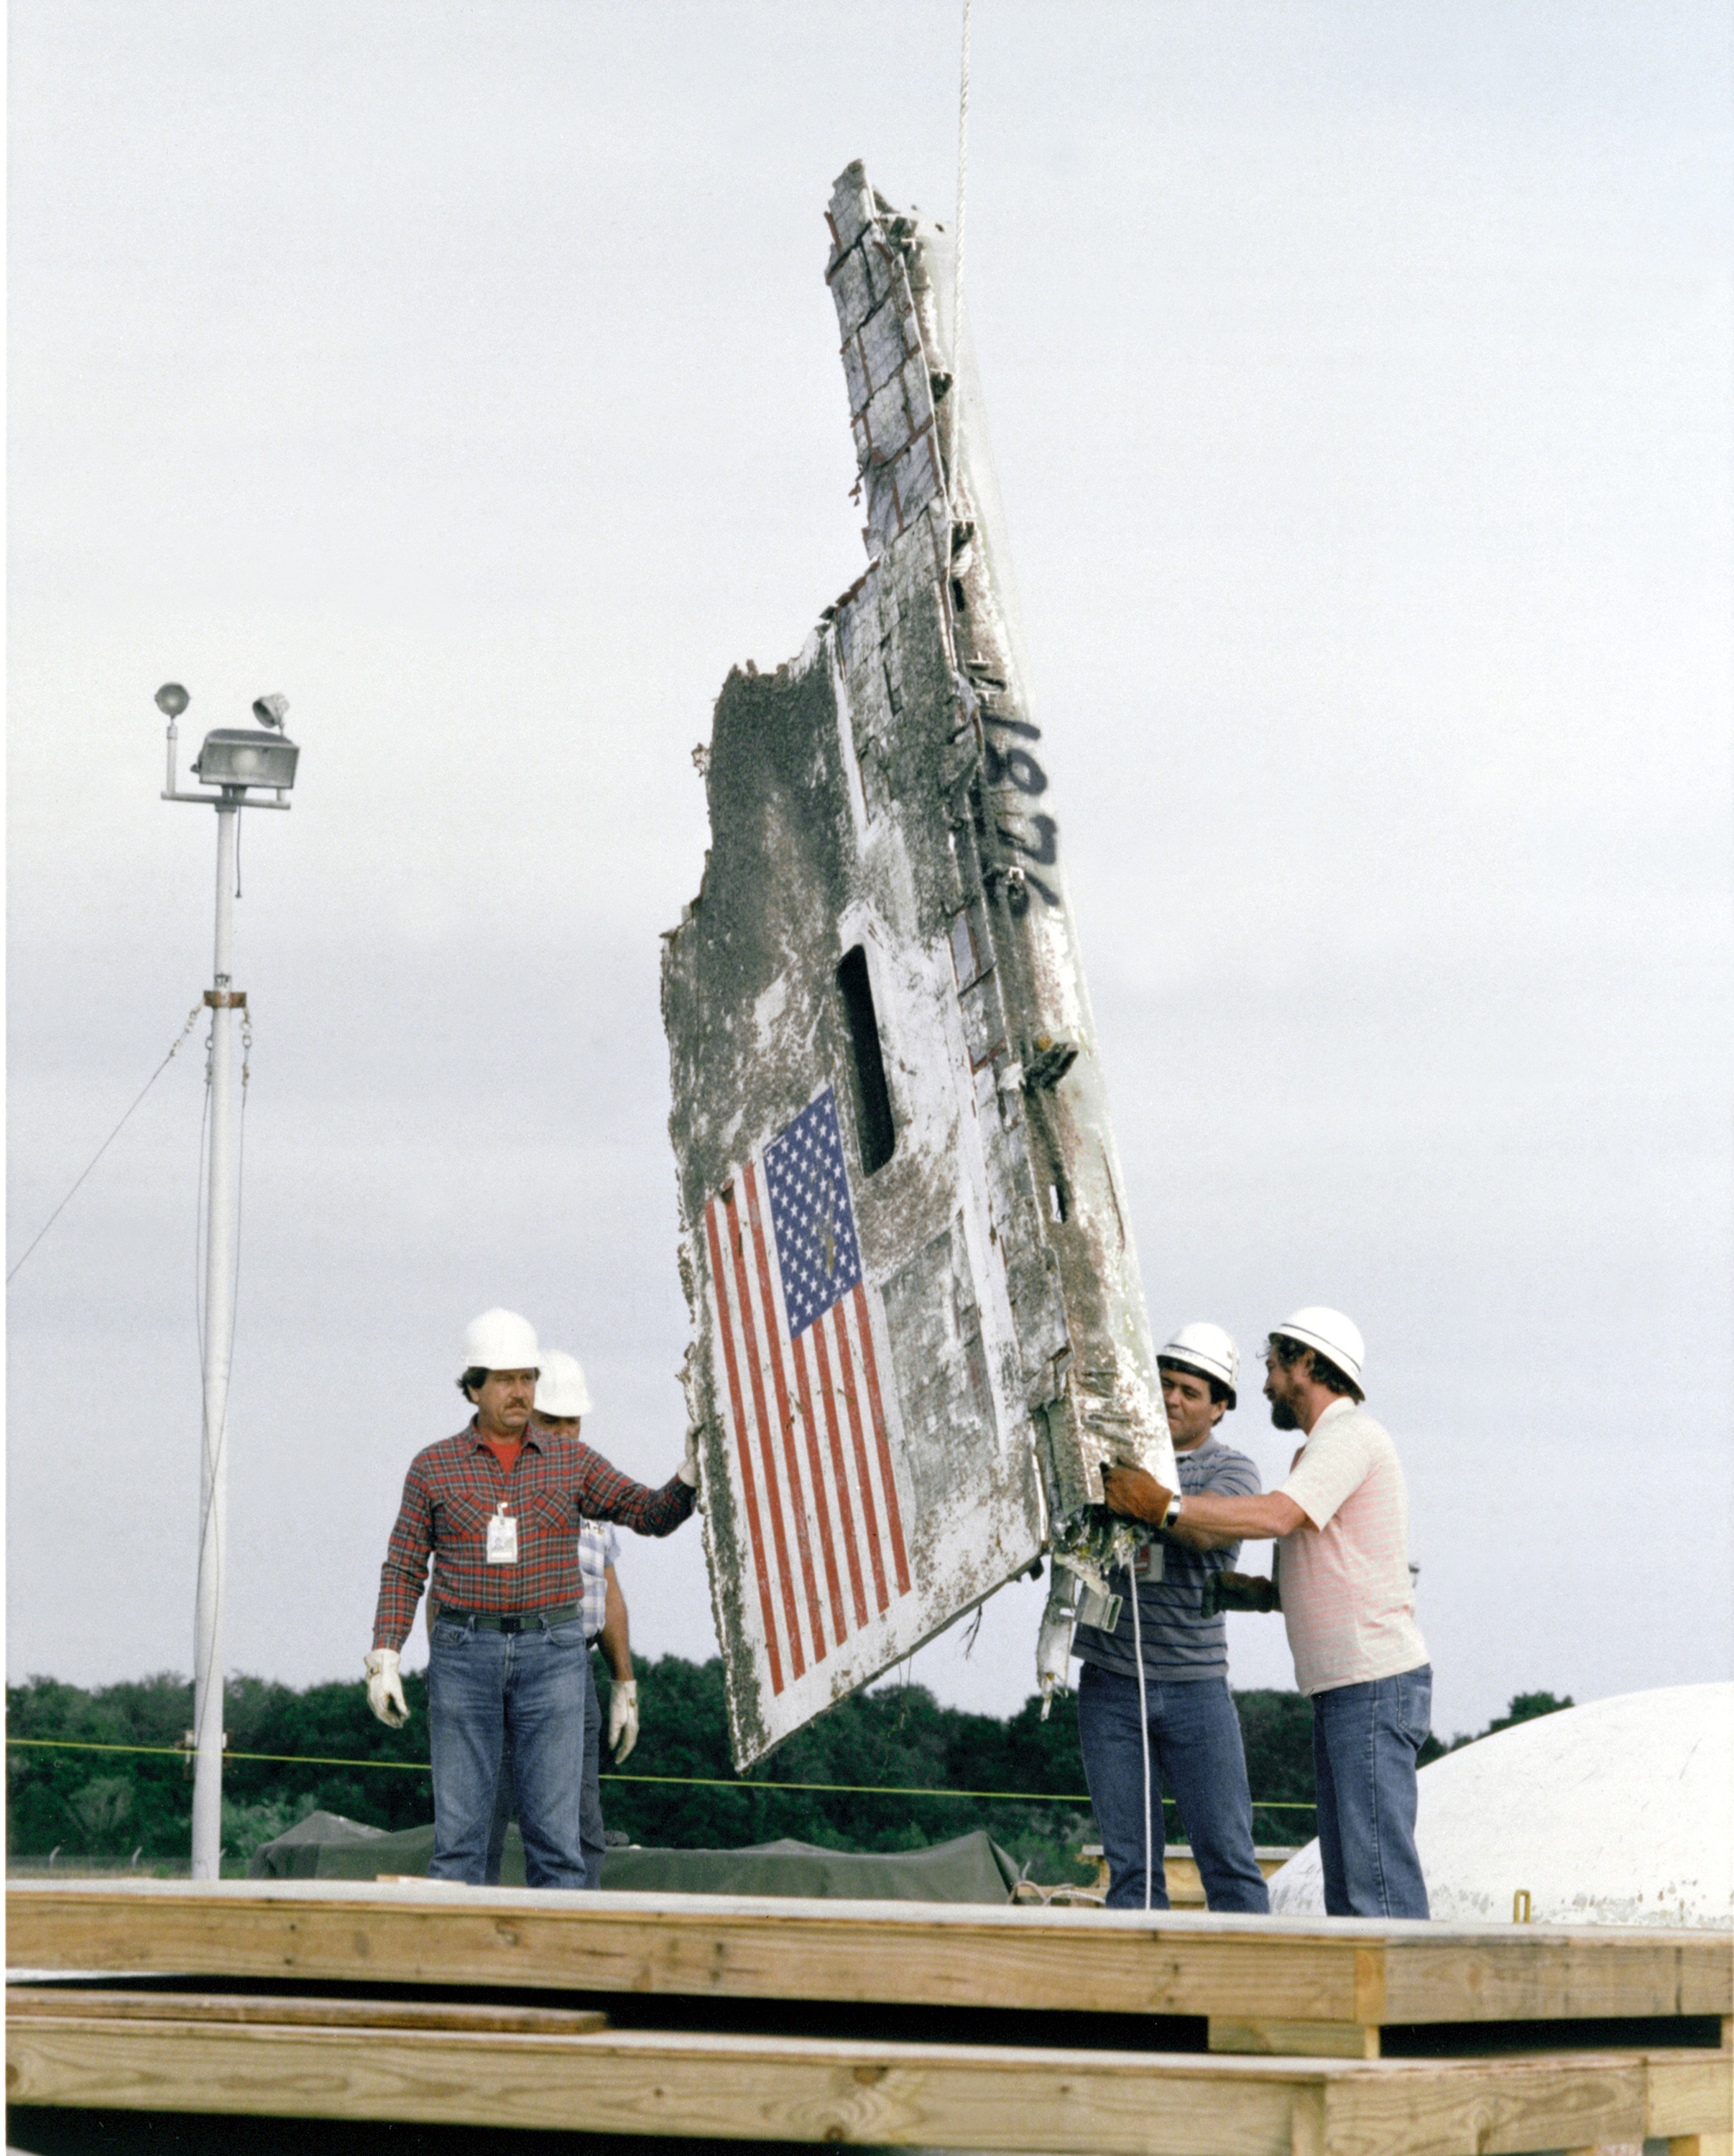 space shuttle challenger wreckage - photo #12